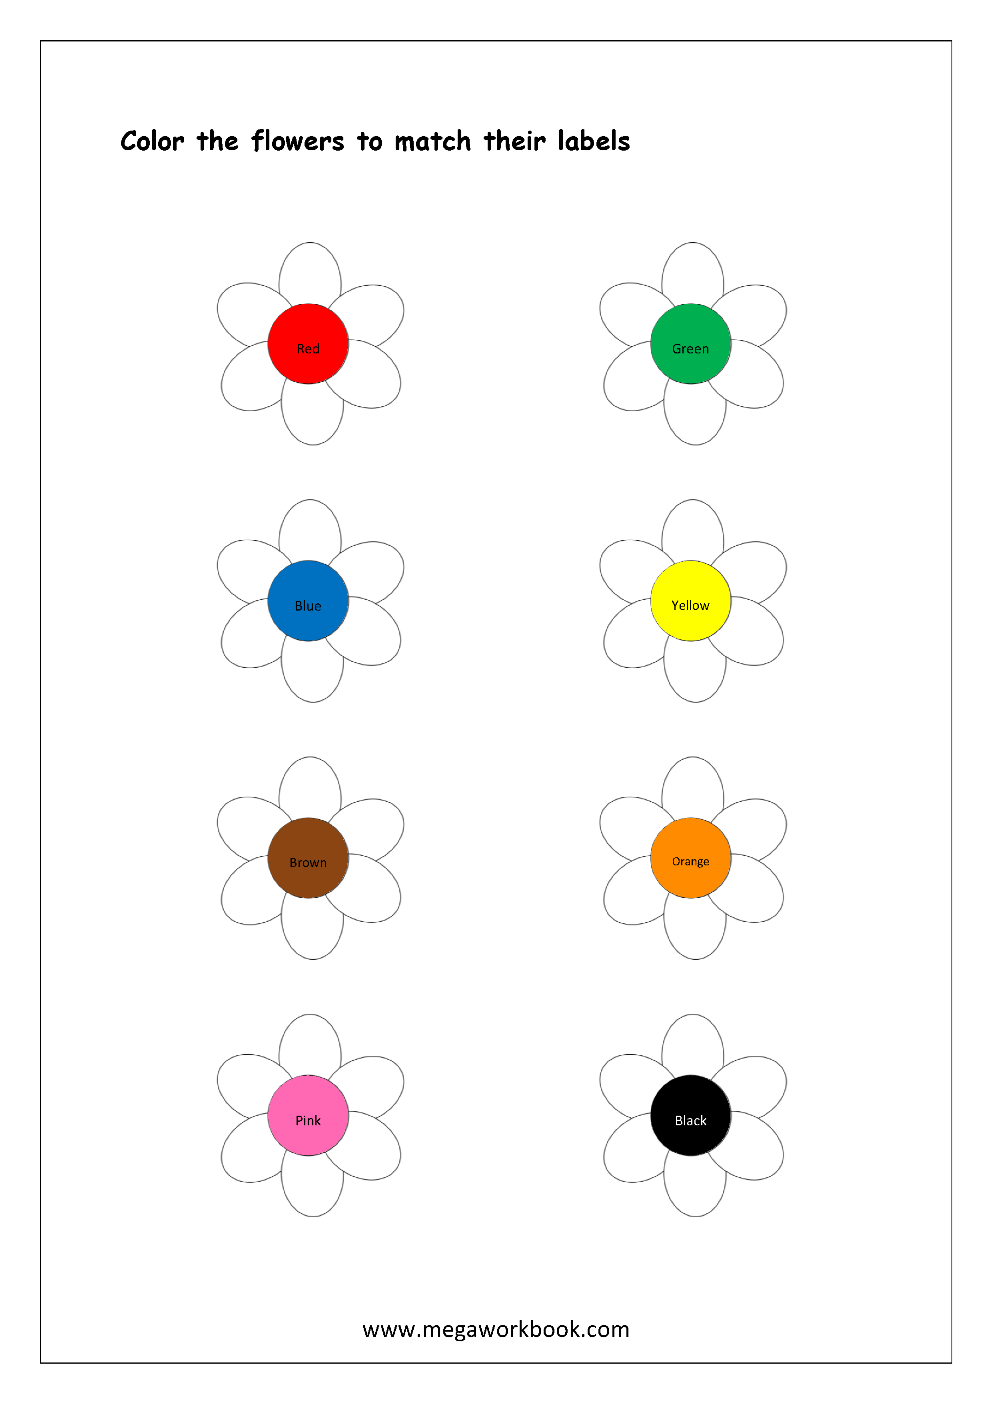 Color recognition worksheet color the objects using matching color flowers